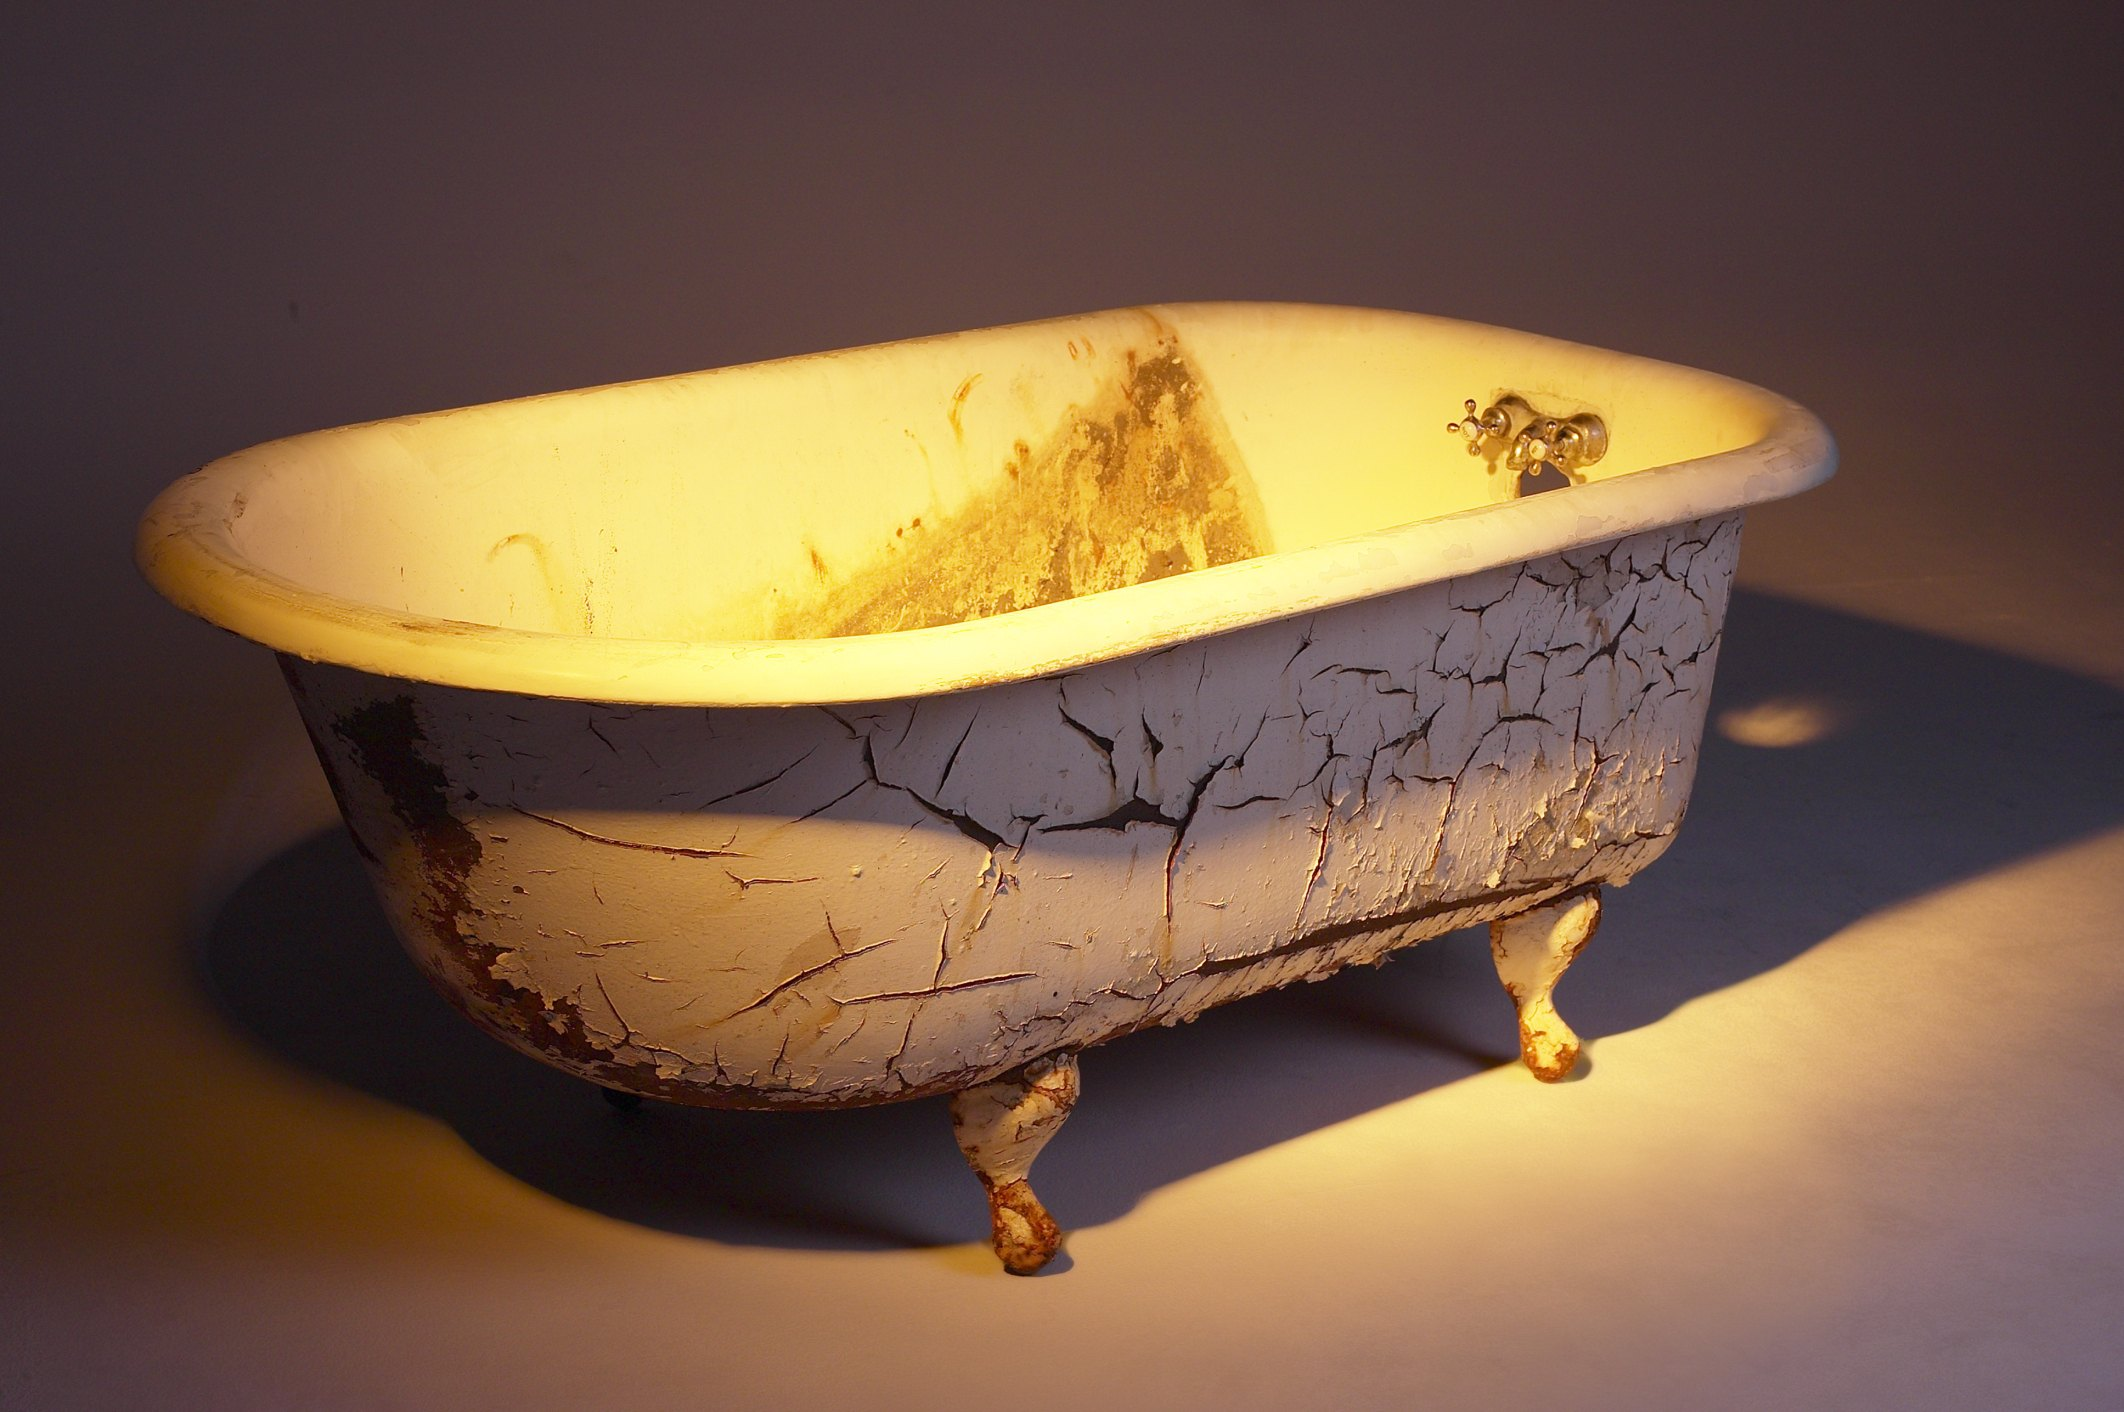 How To Clean Or Refinish An Old Porcelain Bath Tub Ehow